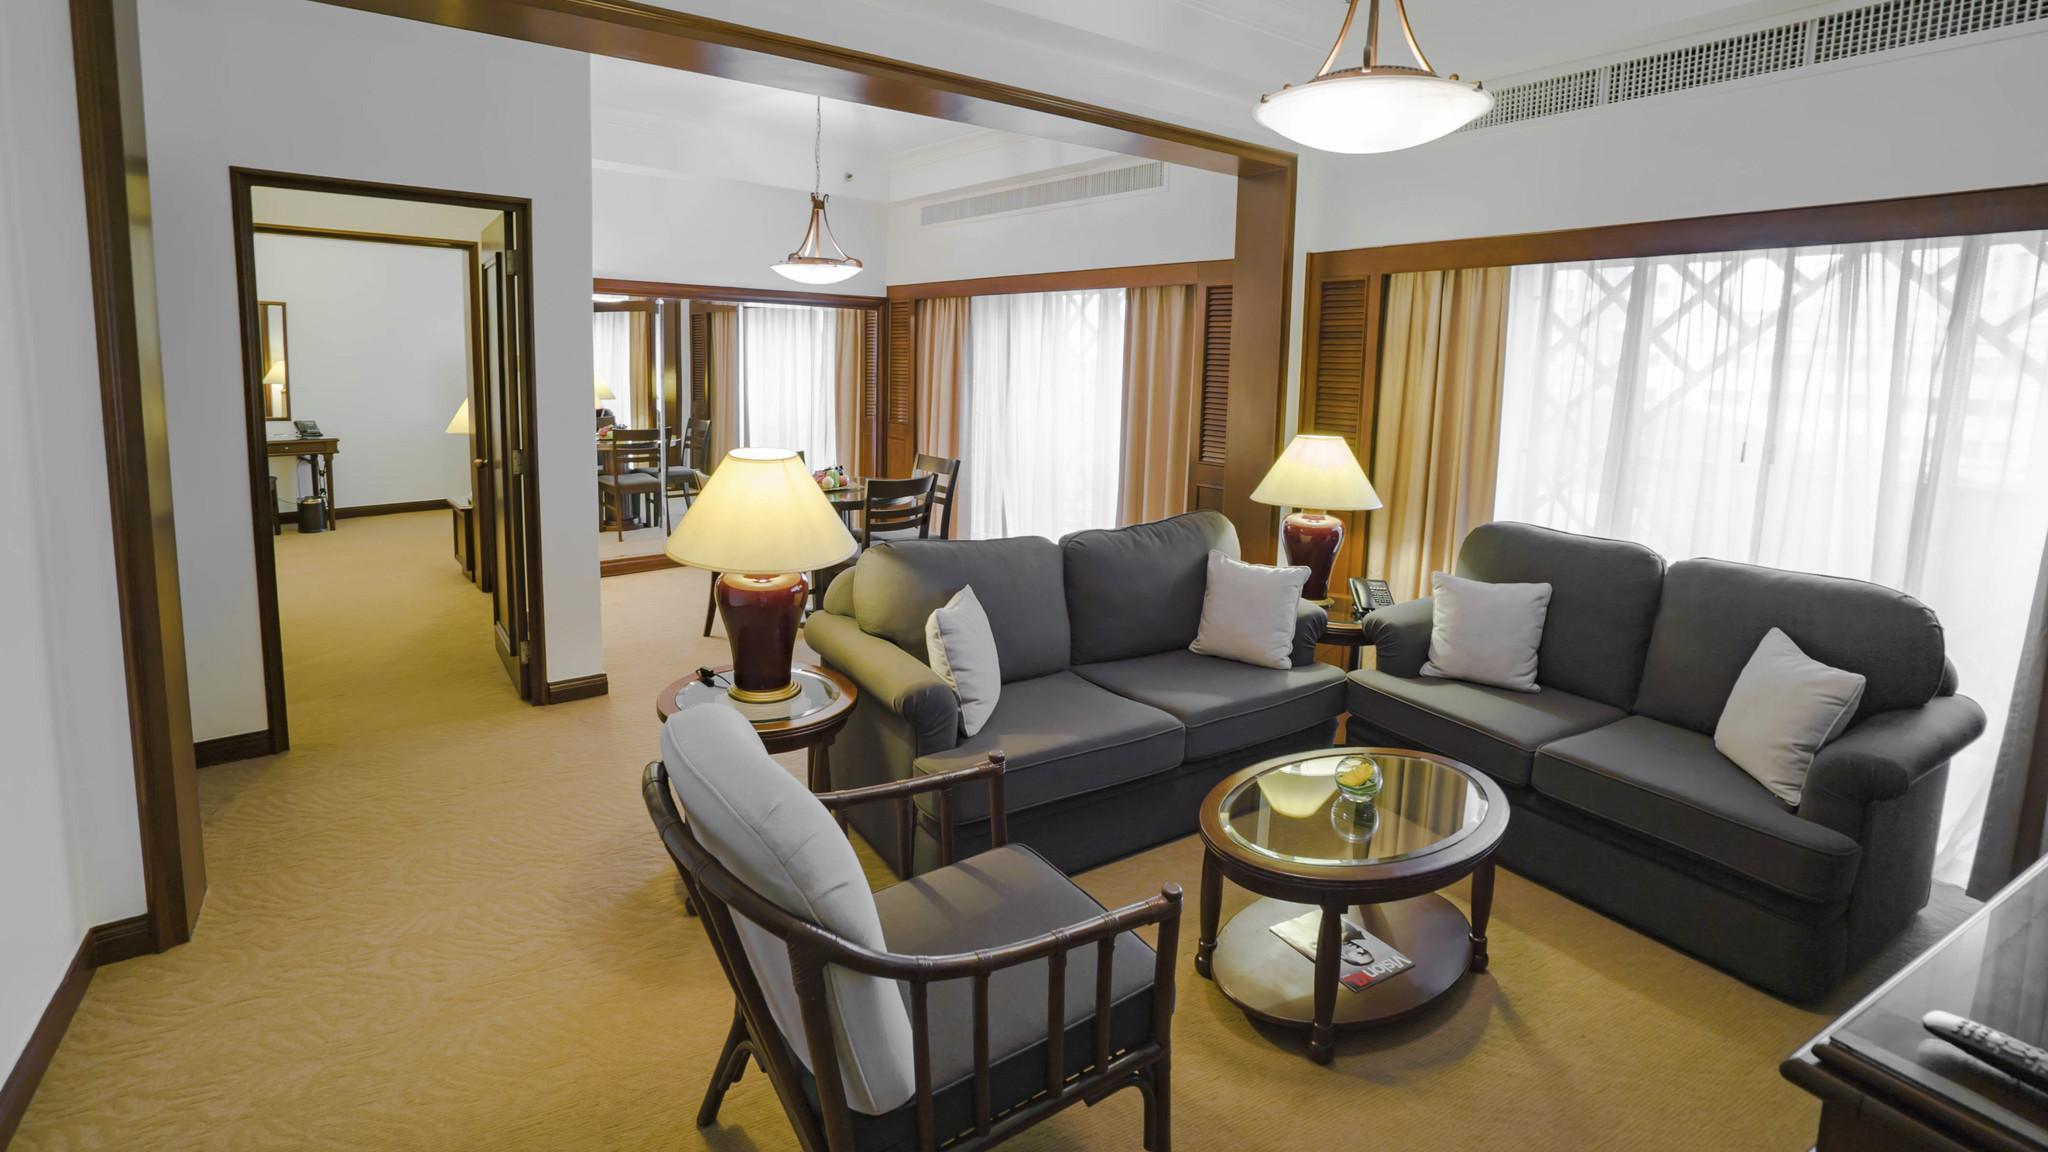 Book ambassador row hotel suites by lanson place in kuala - 2 bedroom hotel suites singapore ...